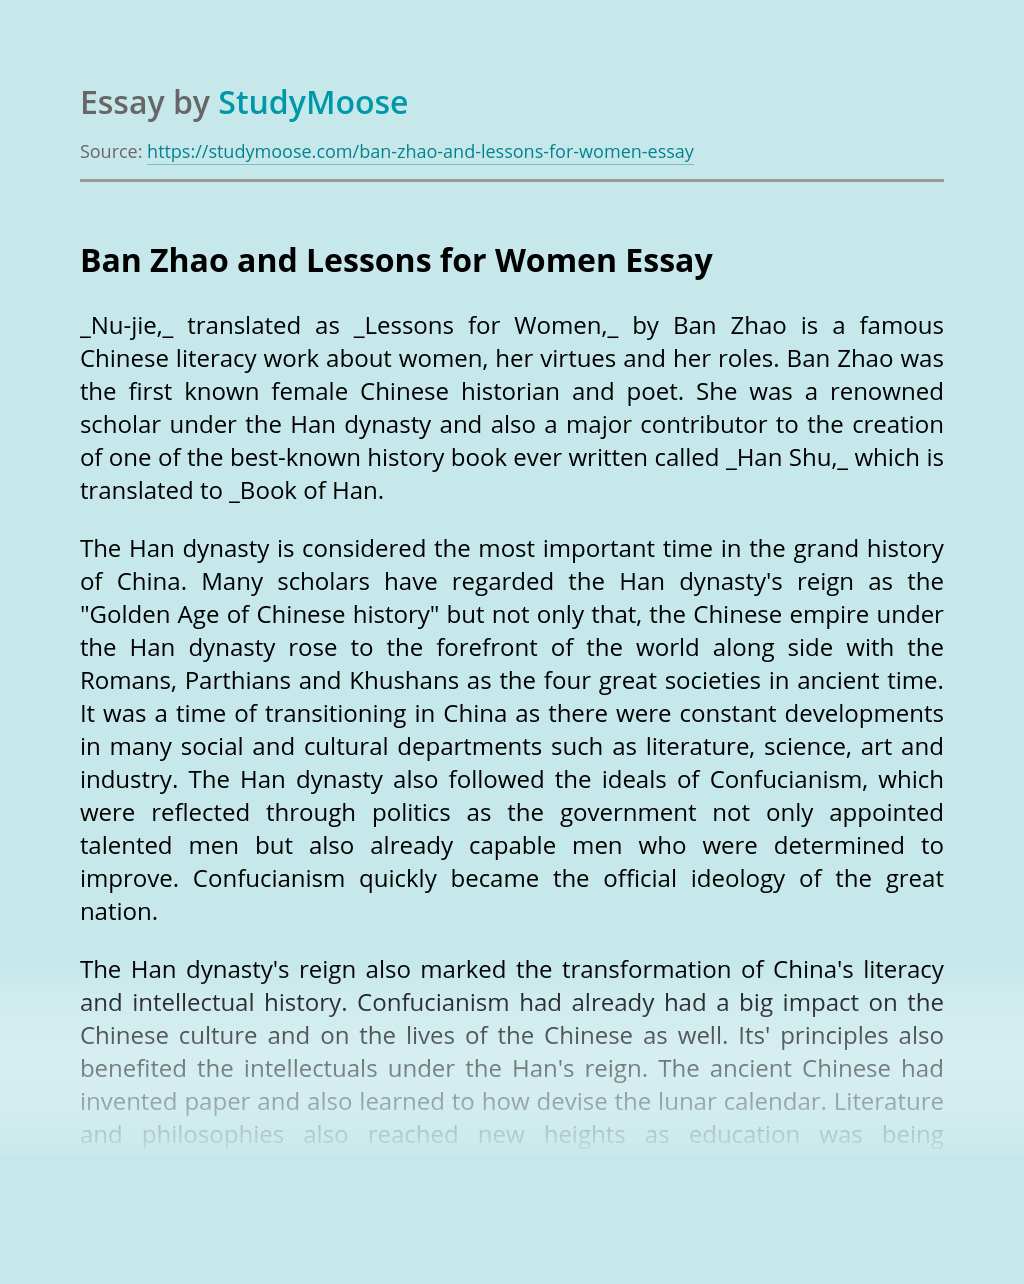 Ban Zhao and Lessons for Women